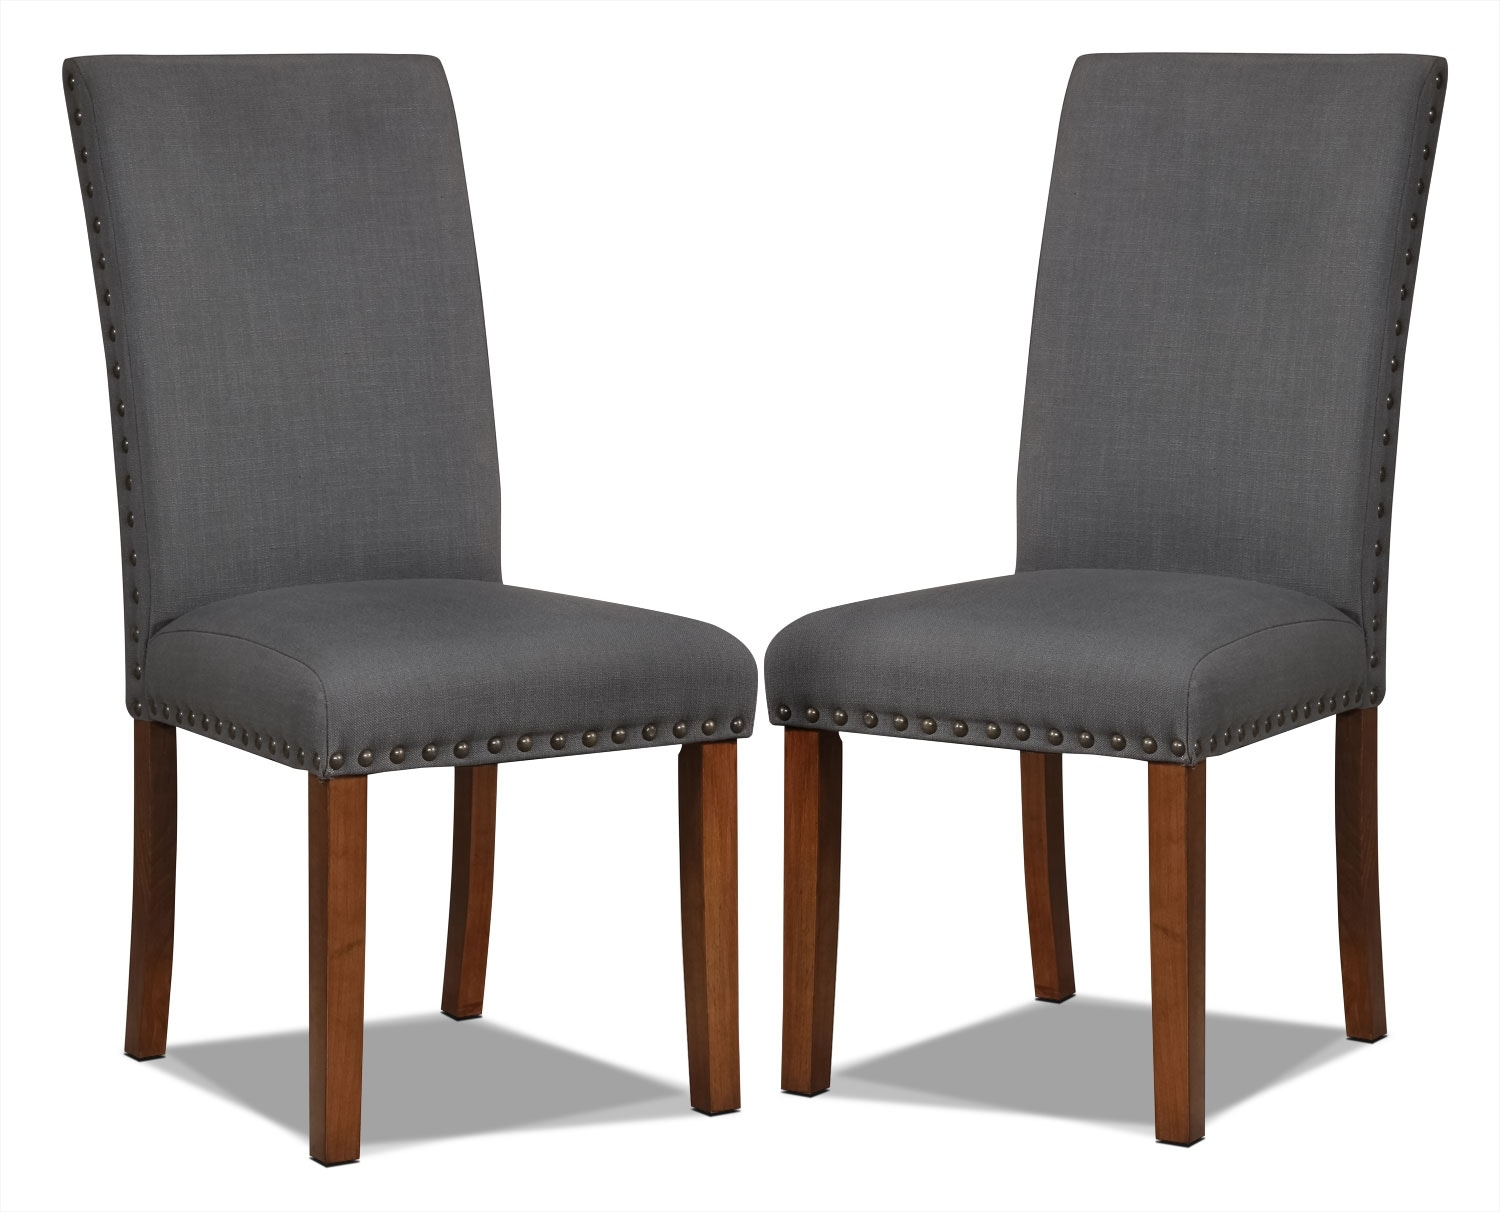 Mindy Side Chairs, Set of 2 – Charcoal